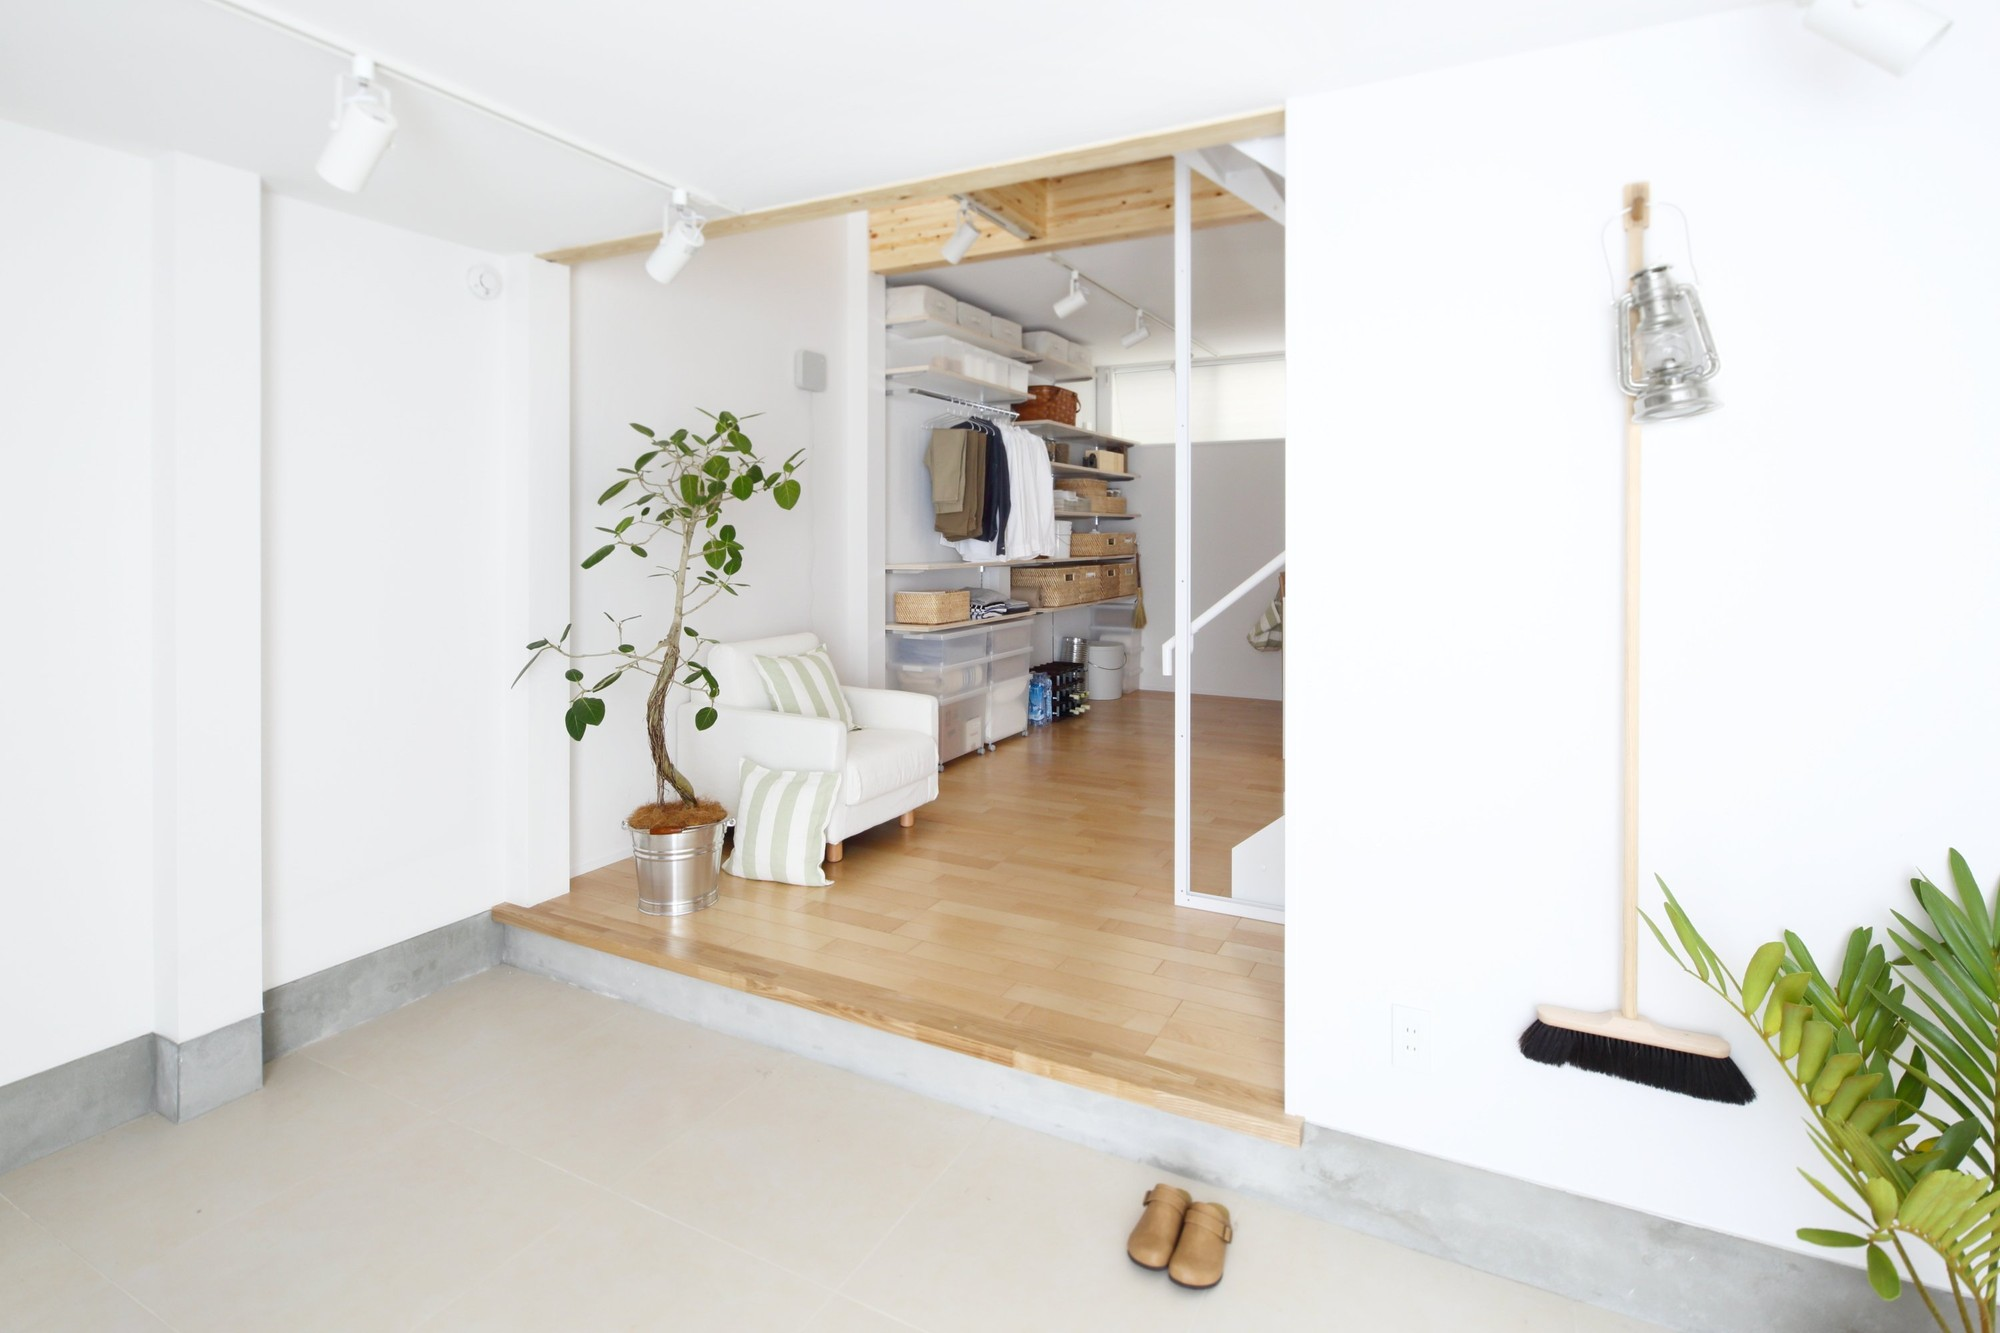 Gallery of Design Your Own Home With MUJI\'s Prefab Vertical House - 7